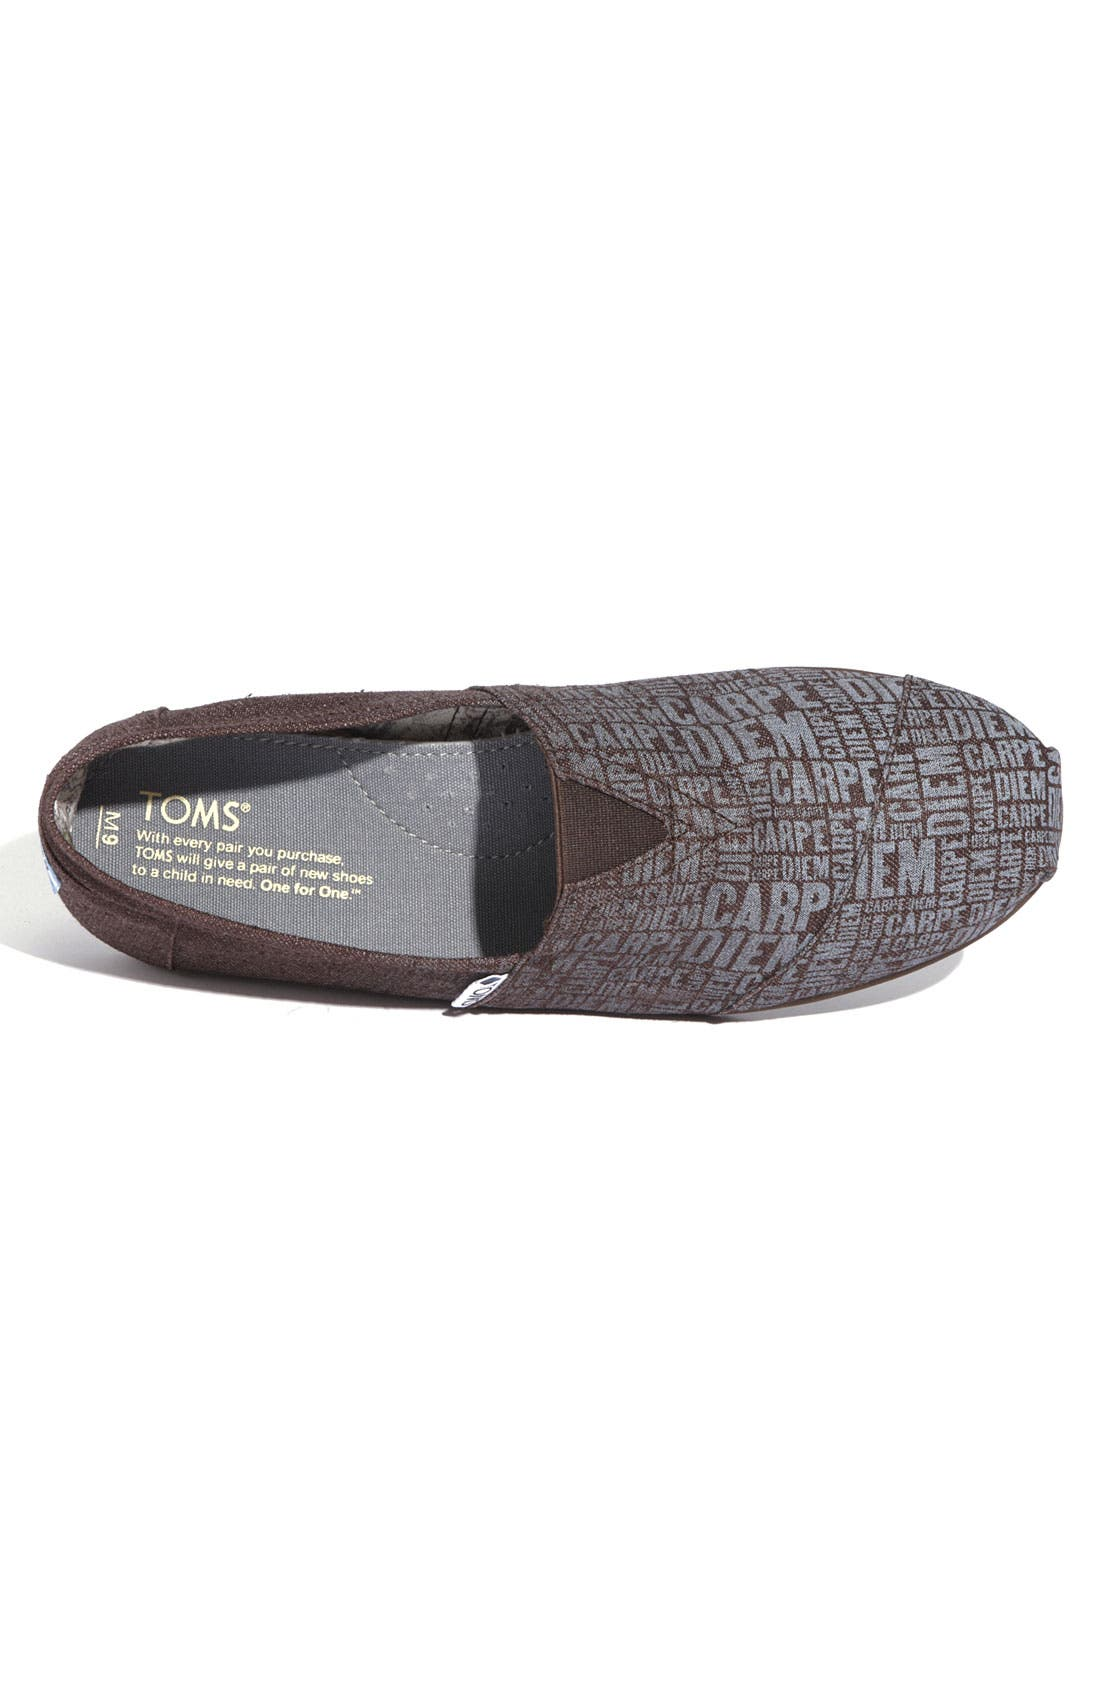 Alternate Image 2  - TOMS 'Classic - Print' Canvas Slip-On (Men)